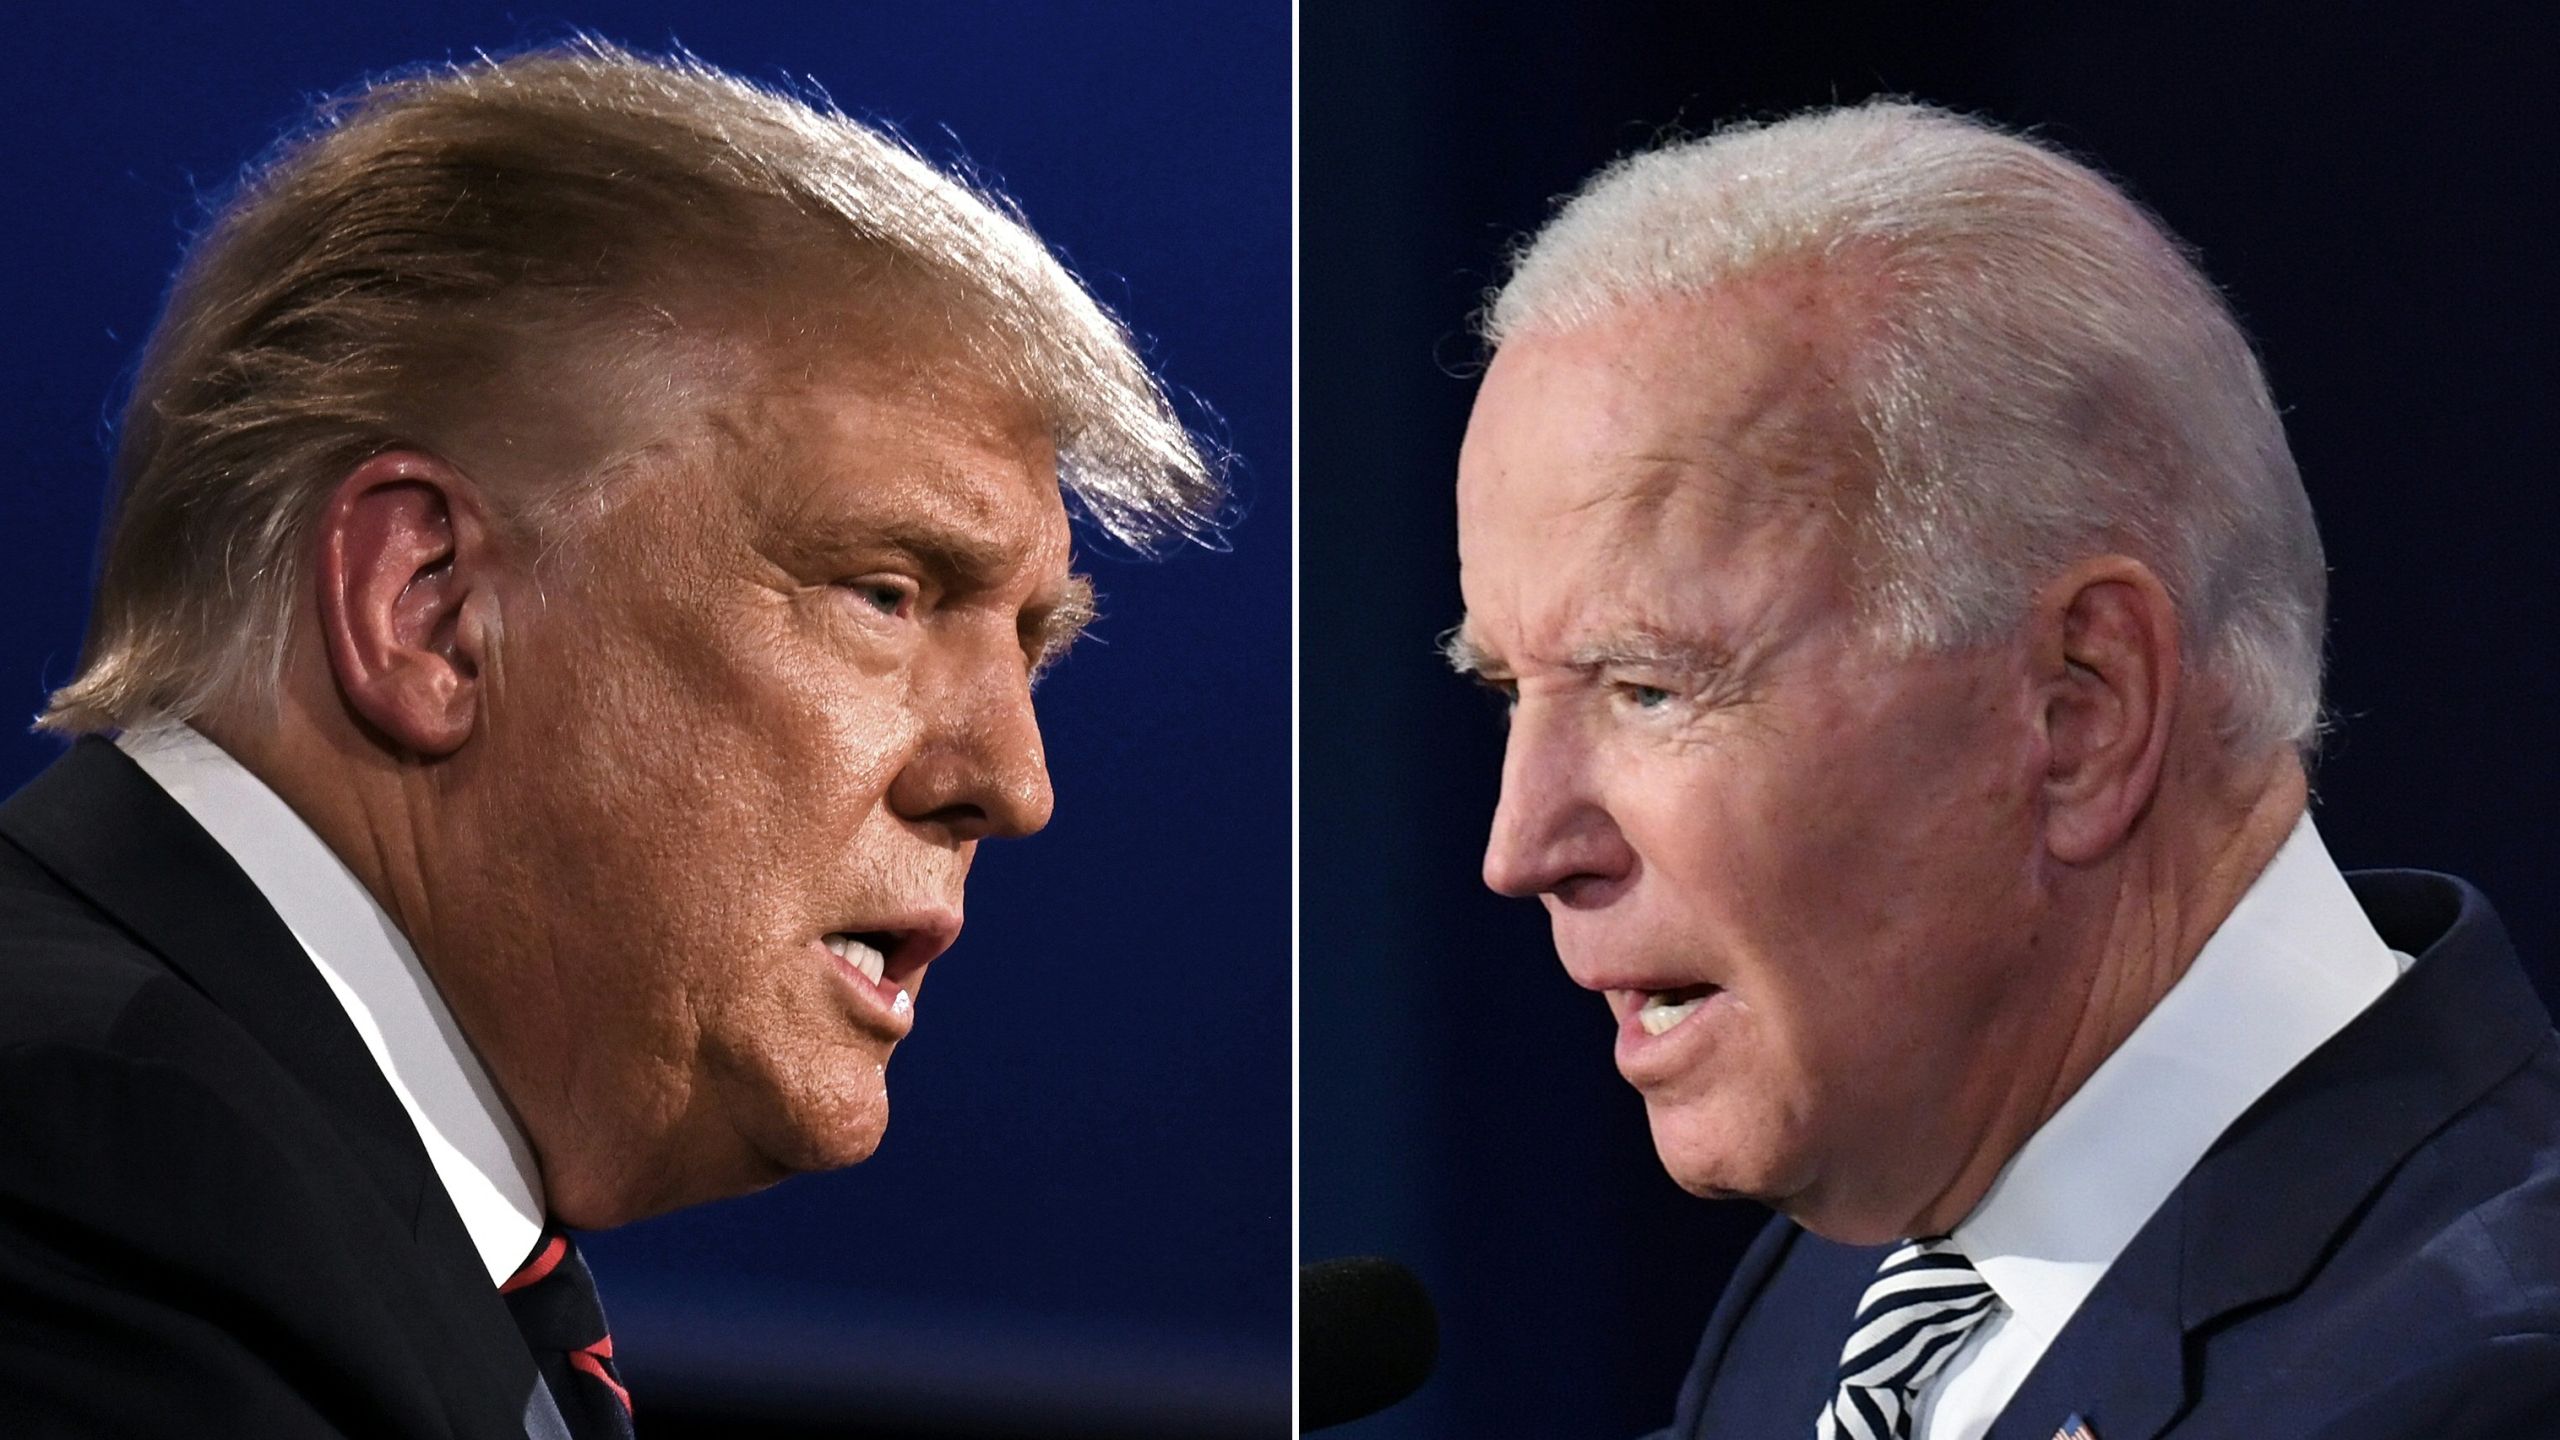 Split picture of Trump and Biden